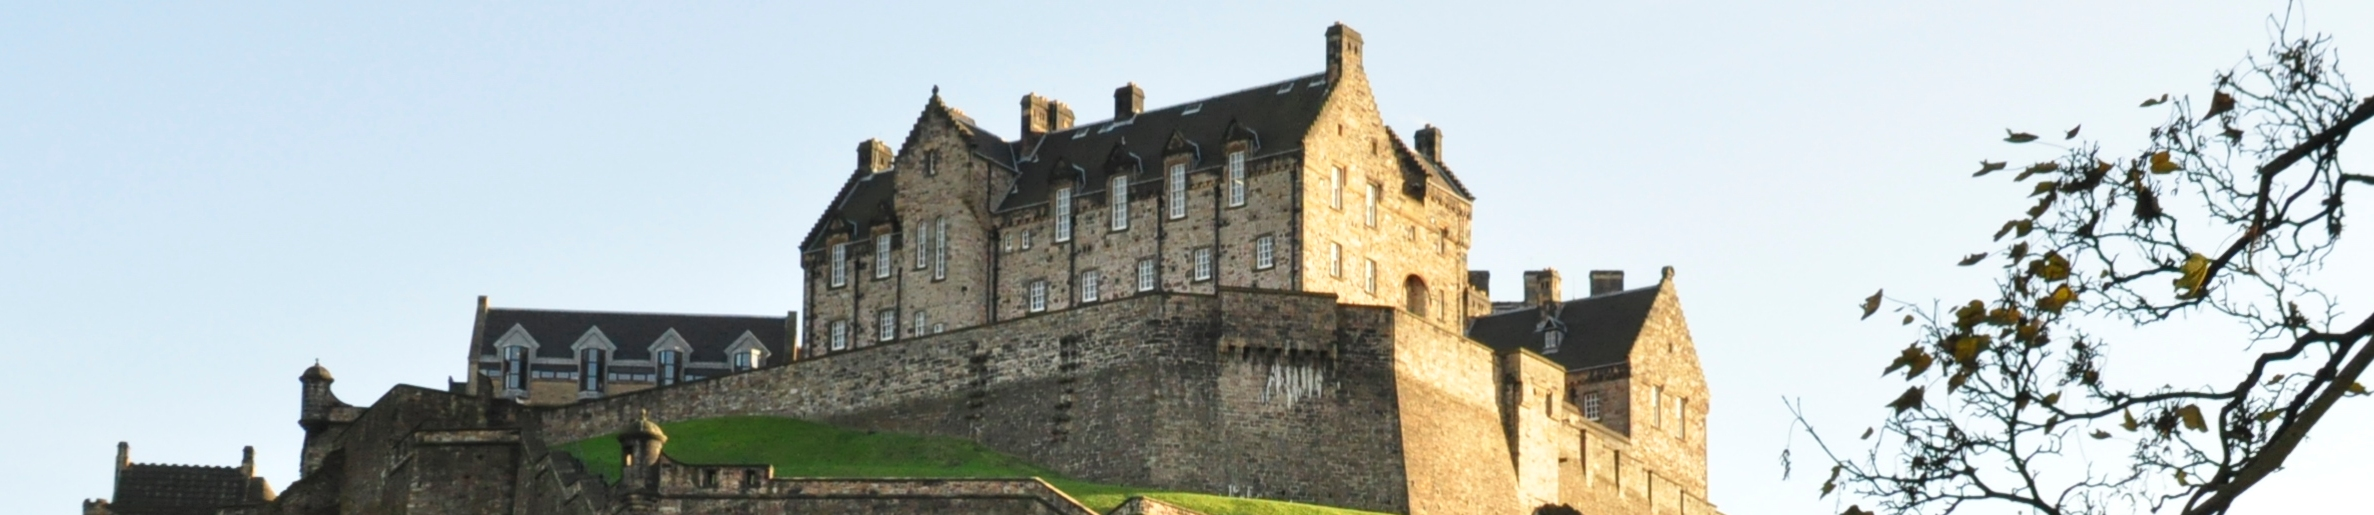 Edinburgh castle - Campervan Hire Edinburgh